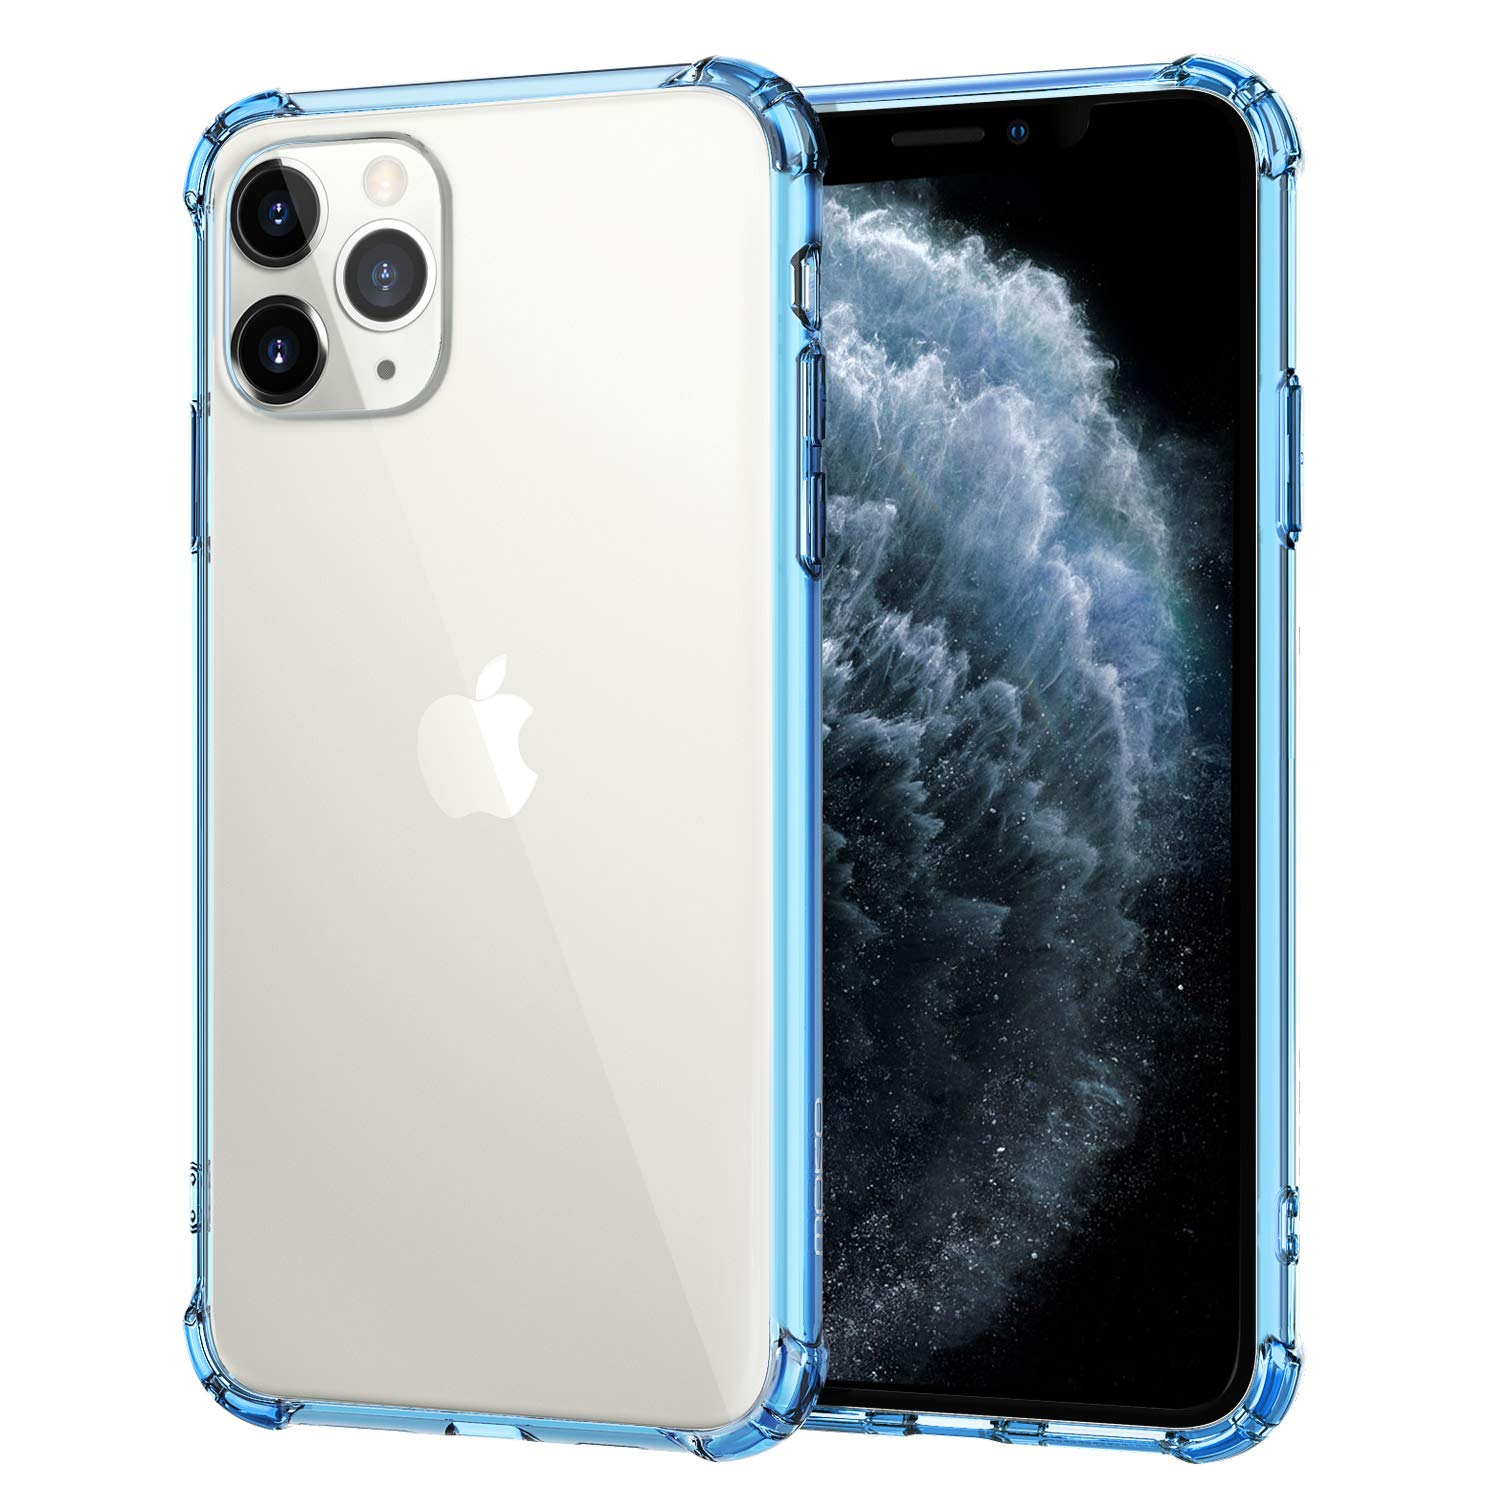 MoKo Compatible with iPhone 11 Pro Max Case, Reinforced Corner TPU Bumper + Anti-Yellow Transparent Hard Panel Cover Fit iPhone 11 Pro Max 6.5 inch 2019 - Clear Blue